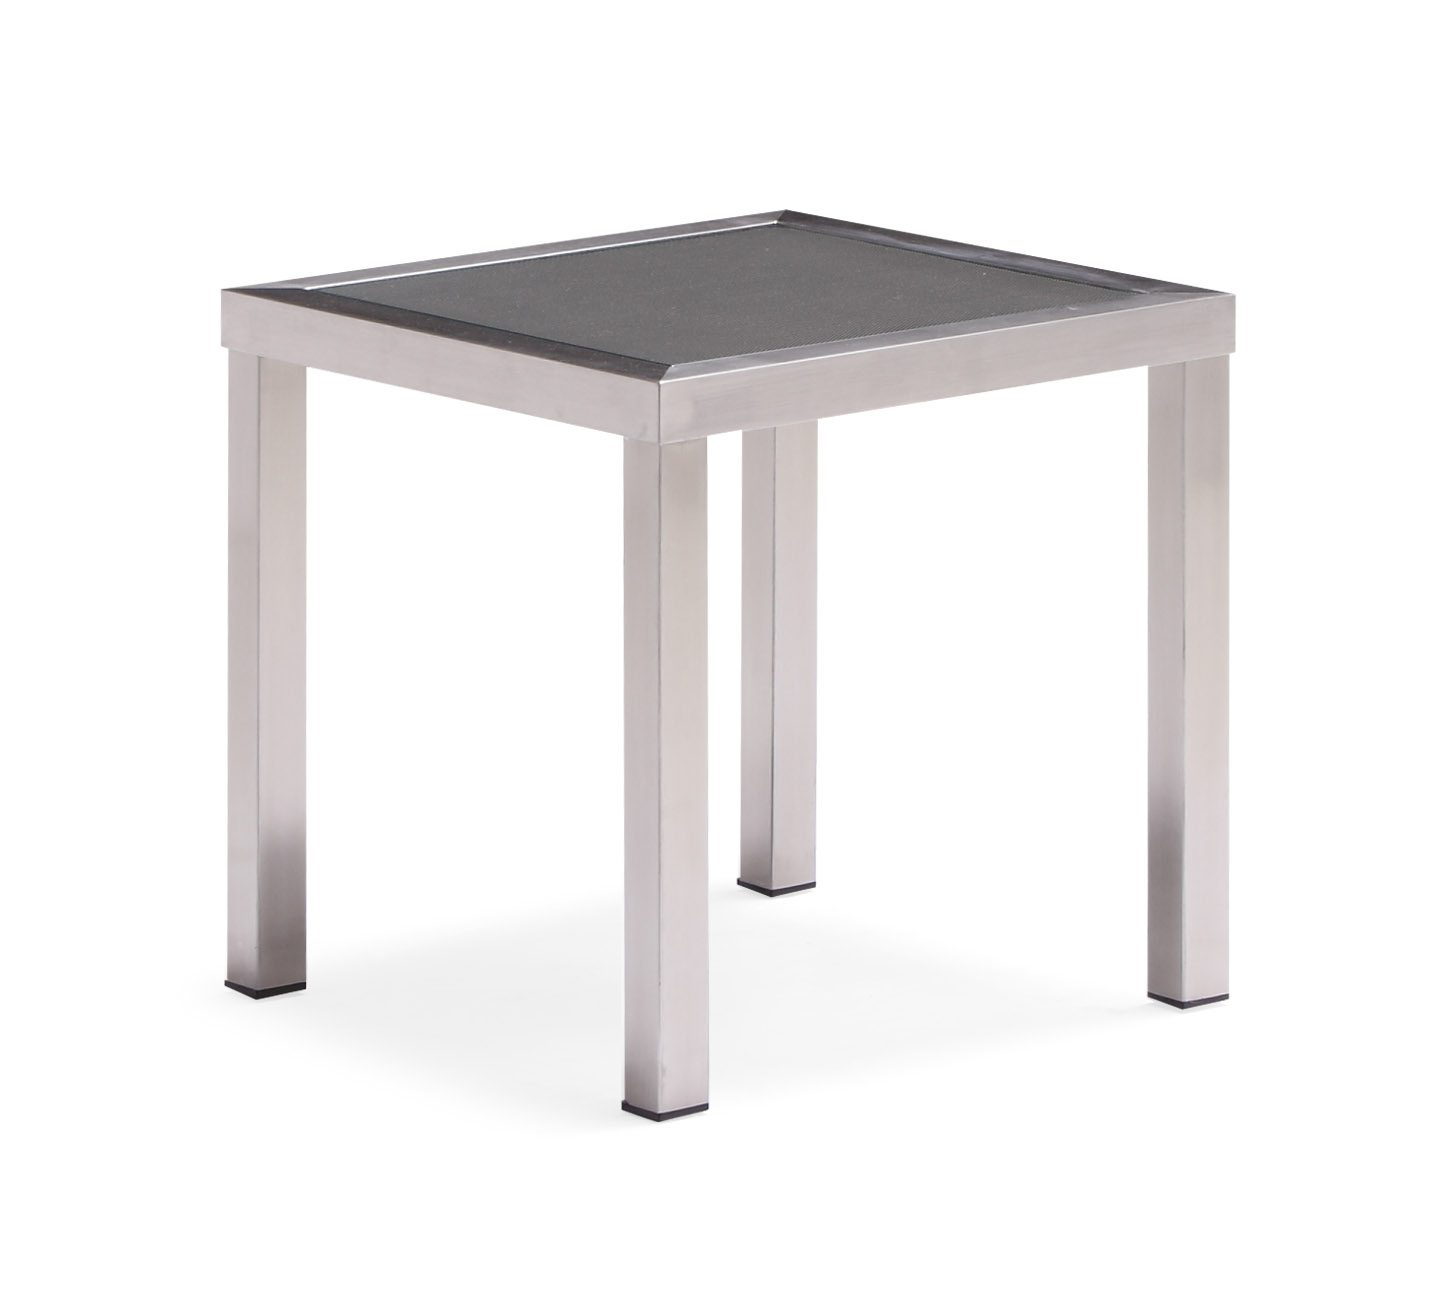 Outdoor sun lounger side table (T006BJ)